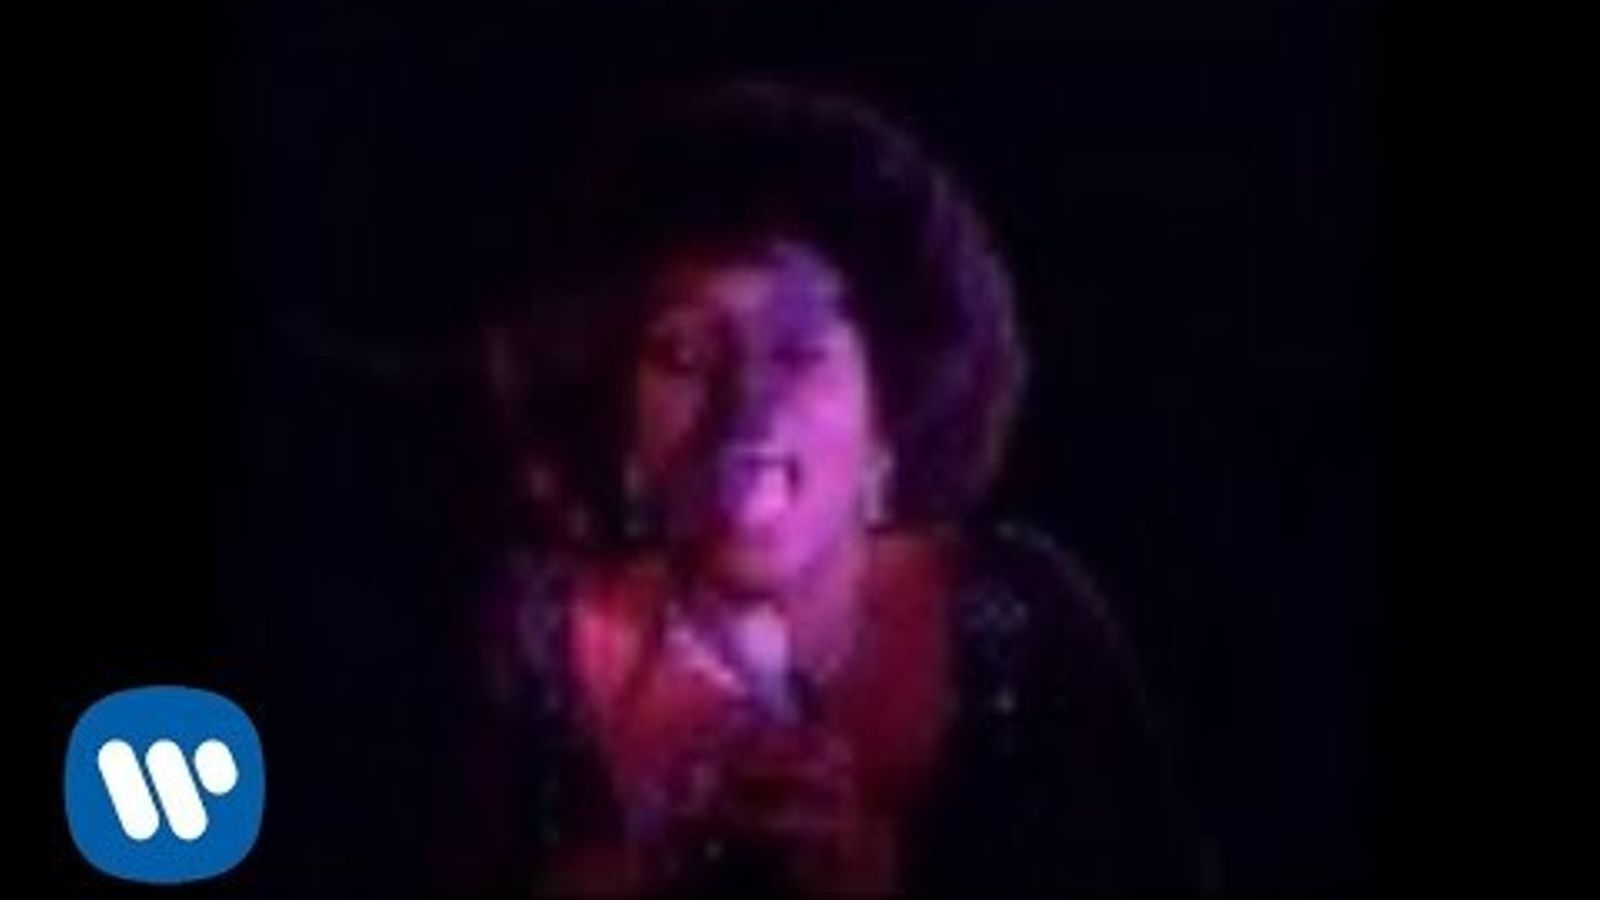 'I will survive', de Gloria Gaynor